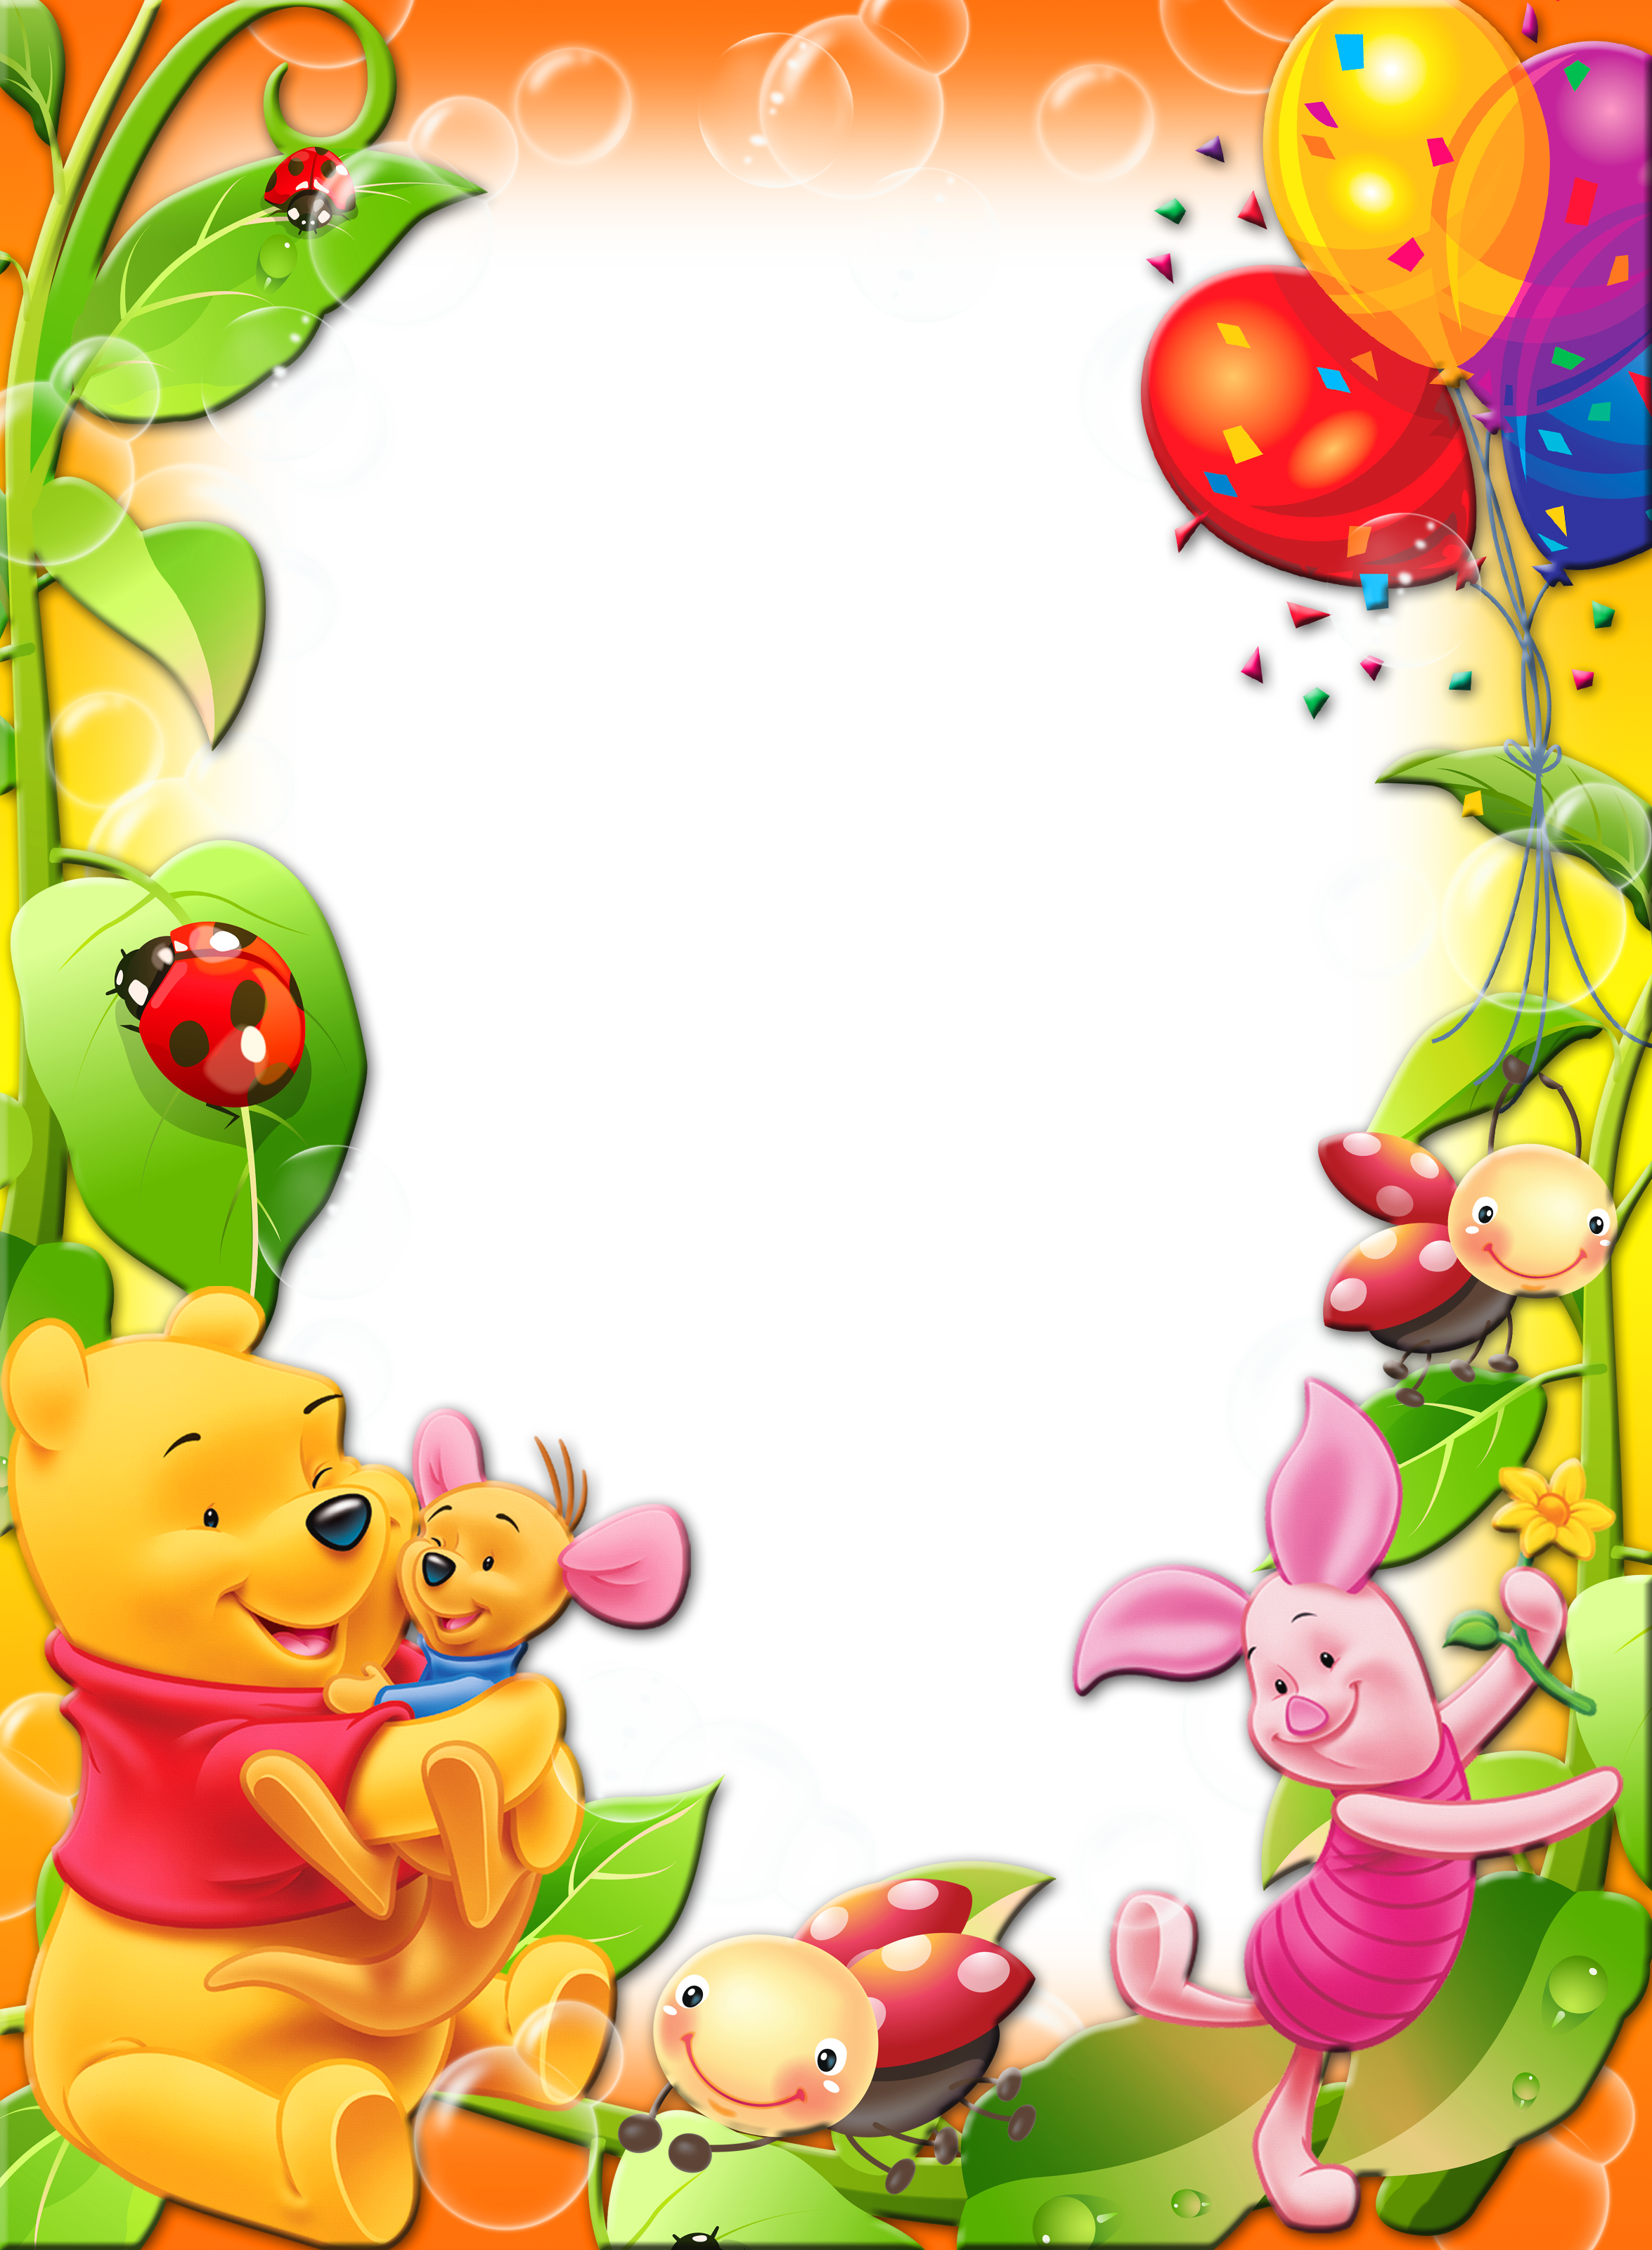 Kids border png. Winnie pooh frames clipart